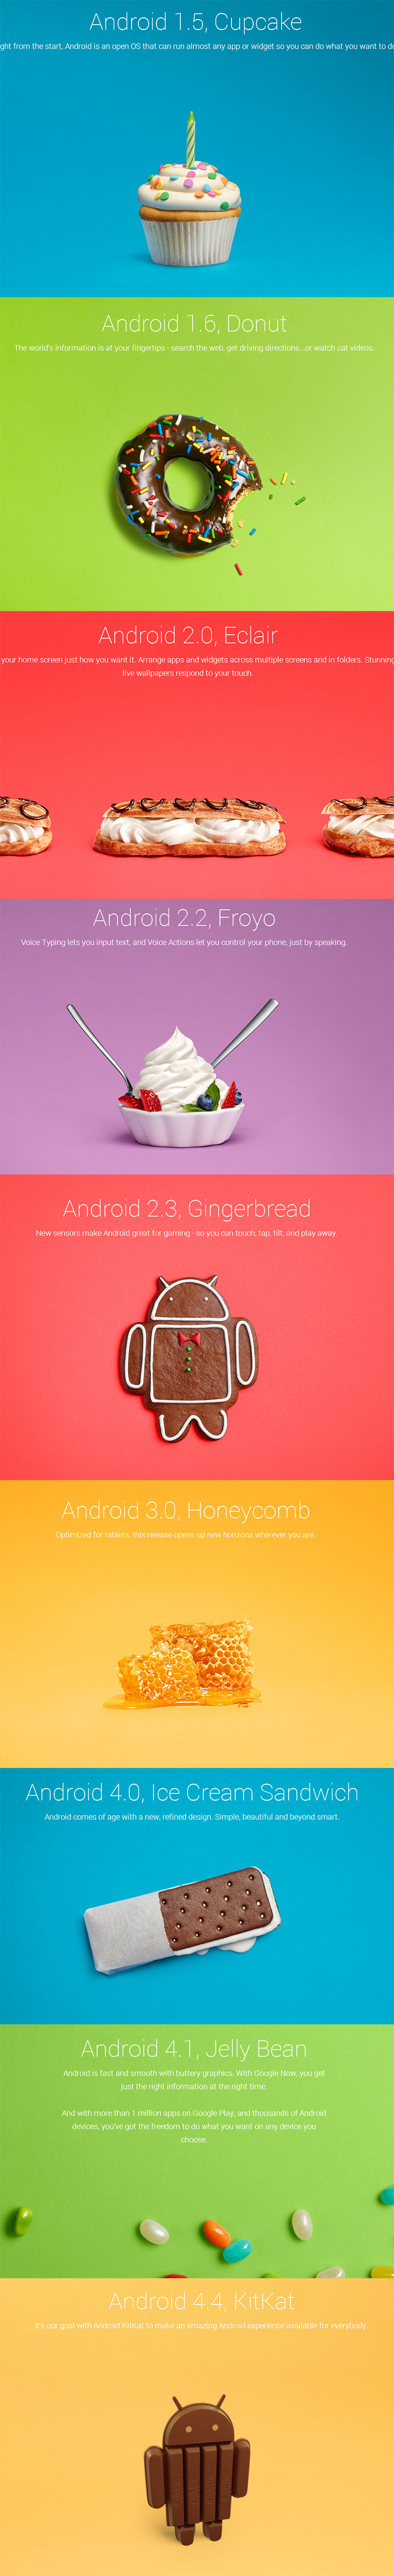 ANDROID_COMBO PUBLICIDADE_BLOG